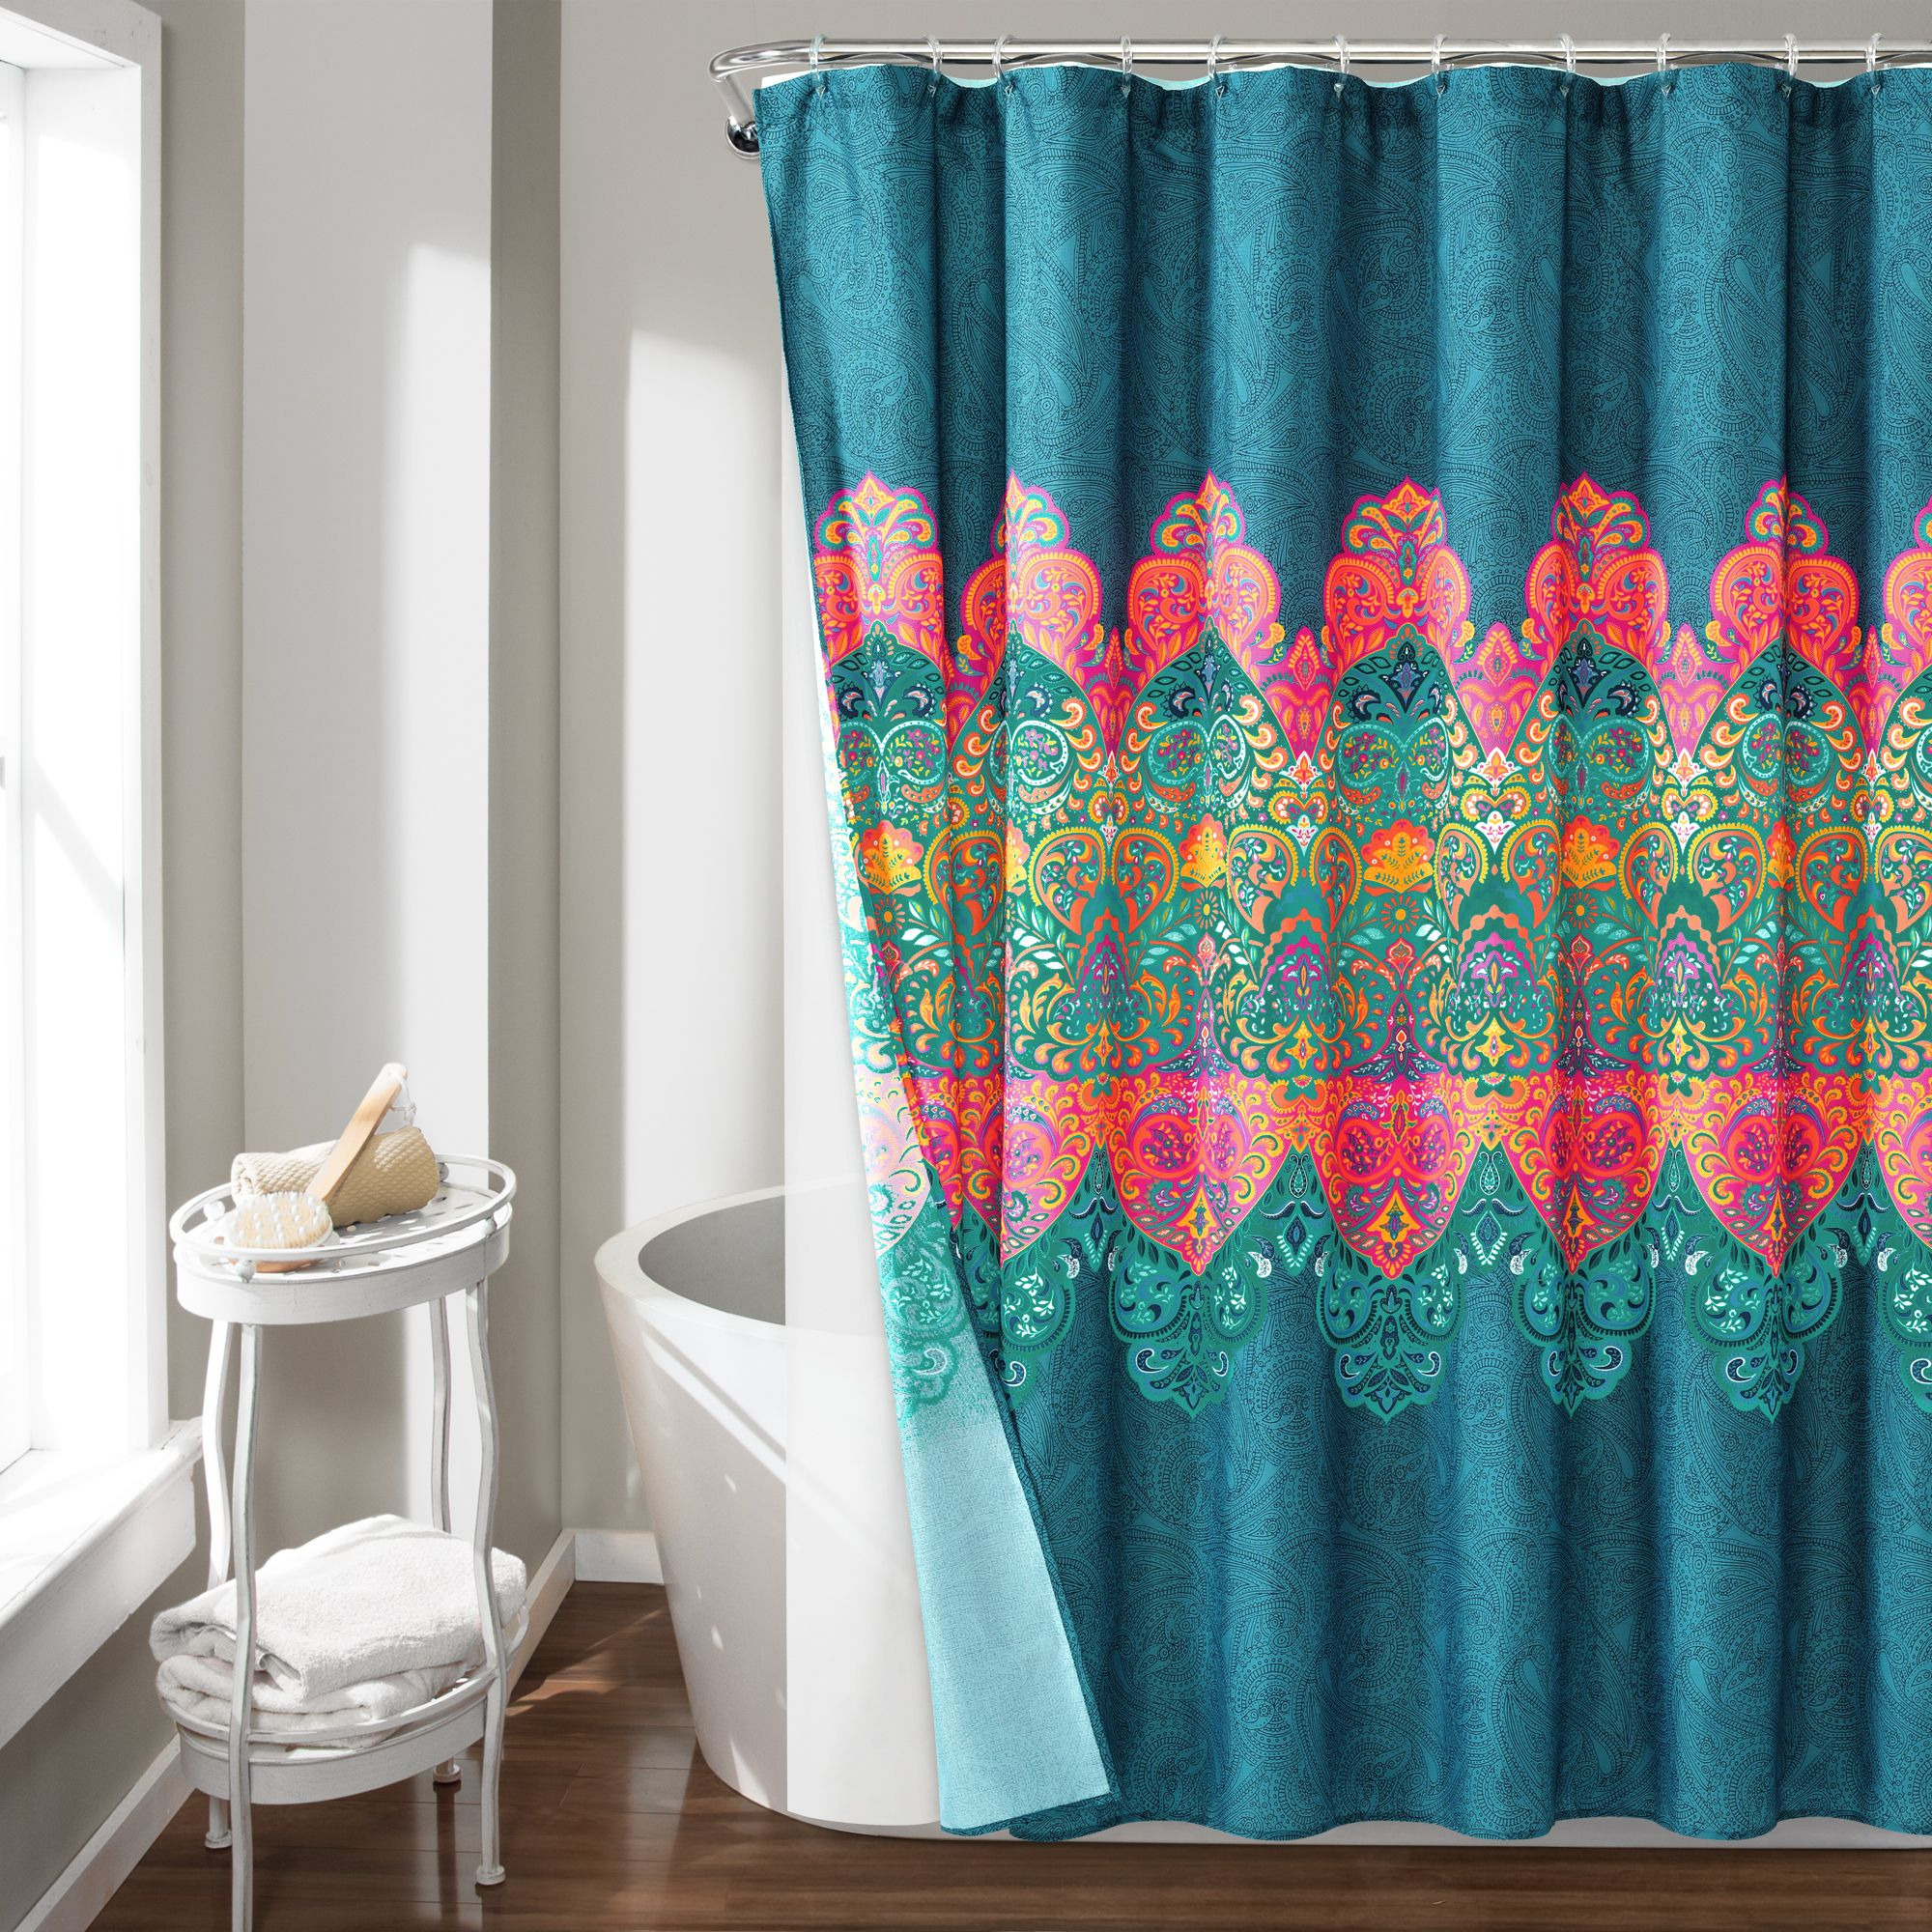 Boho Chic Shower Curtain 14 Piece Complete Set Boho Shower